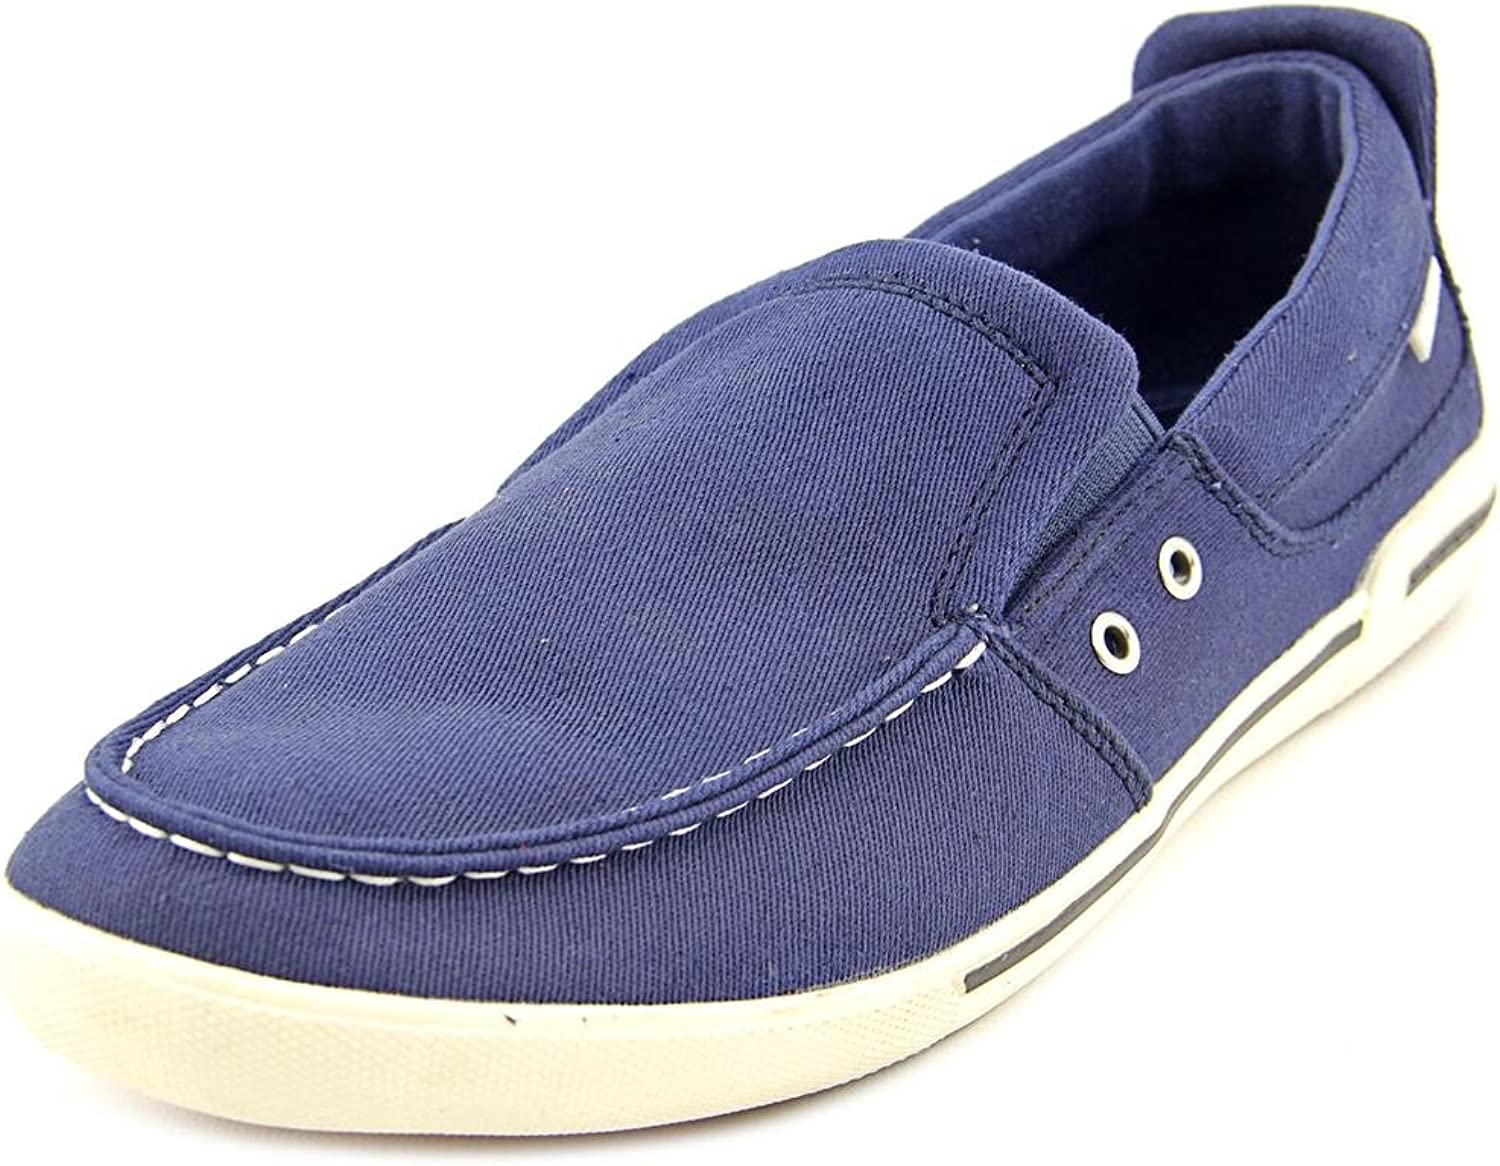 Kenneth Cole Reaction Men's Canvas Fasten Your Anchor Slip On Boat shoes